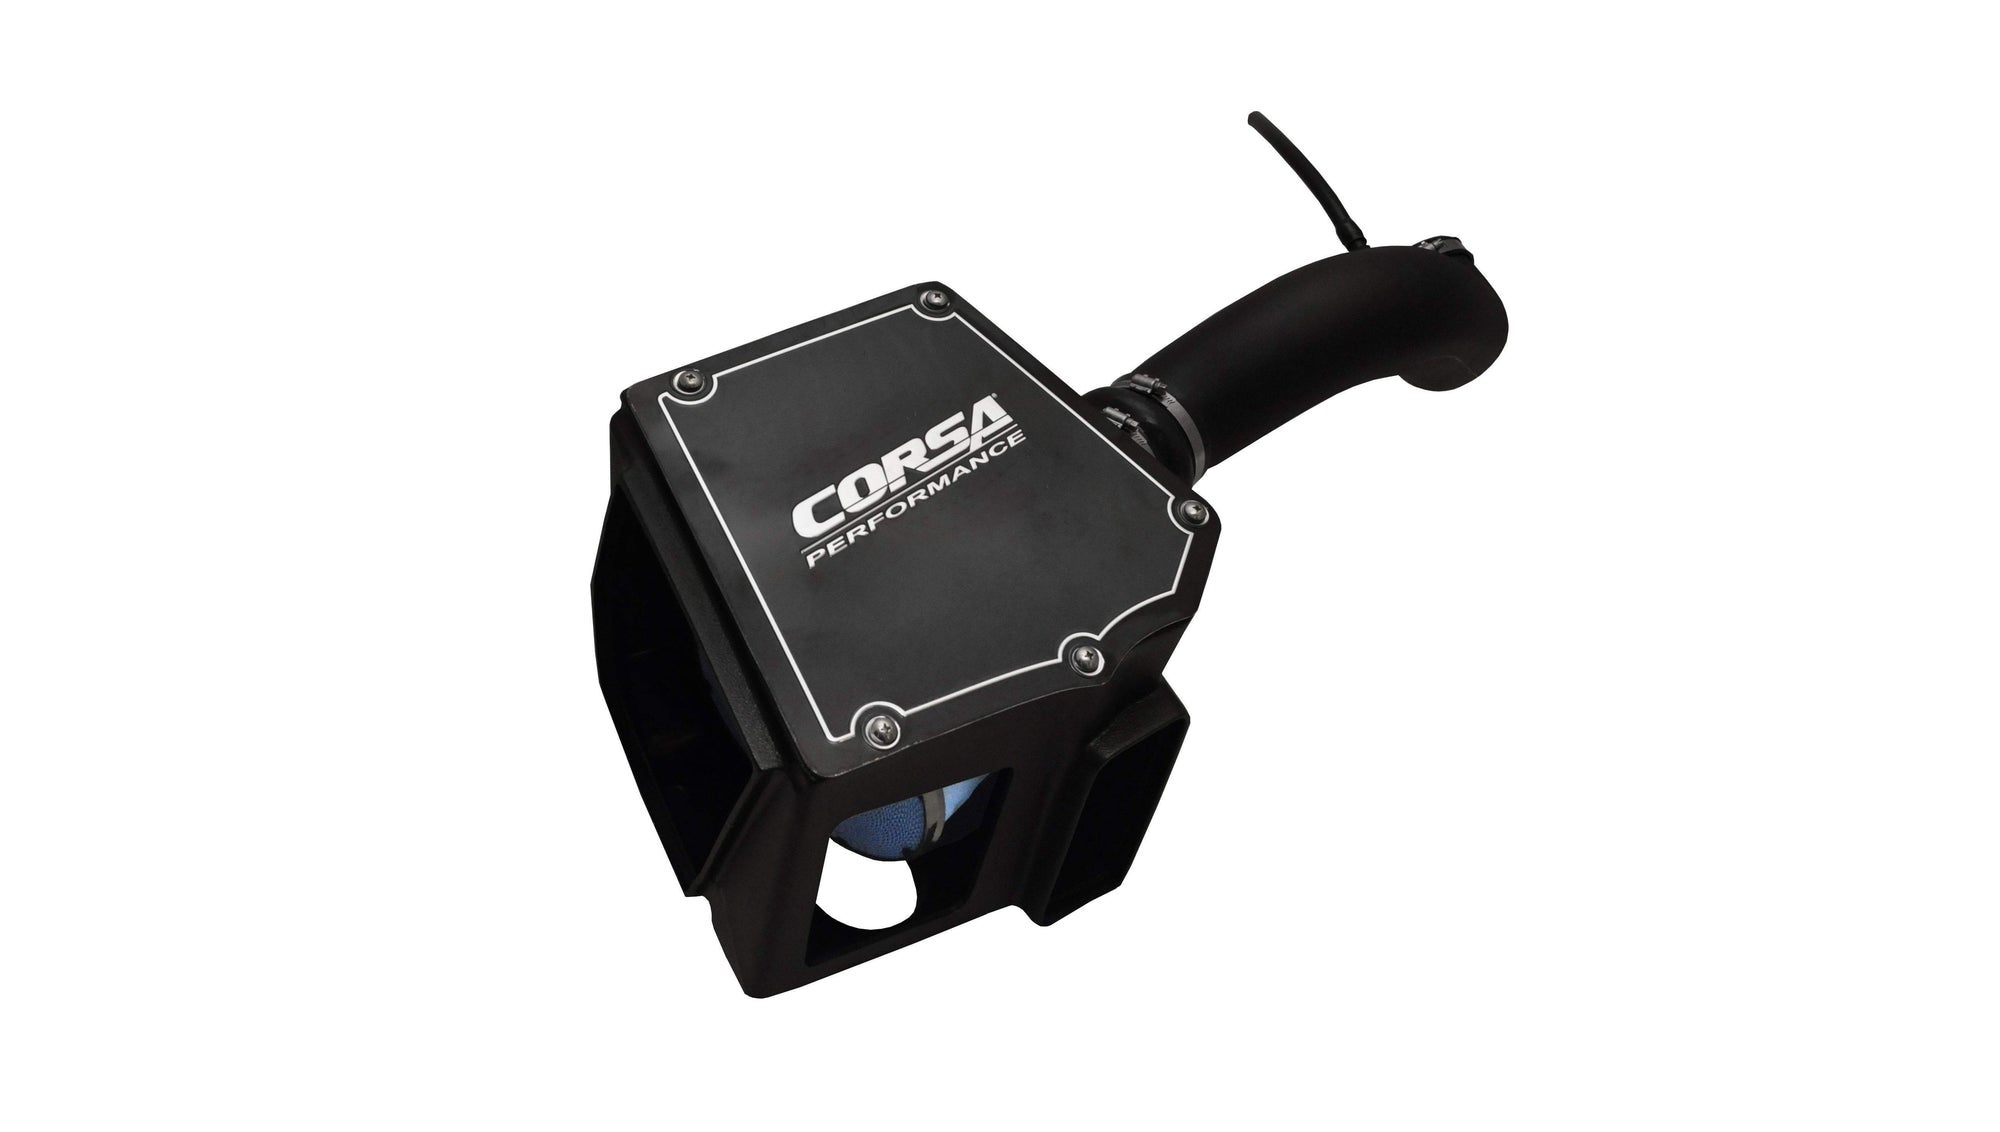 CORSA PERFORMANCE Air Intake 2009-2014 GM Truck, SUV 4.8L, 5.3L, 6.0L, 6.2L V8, PowerCore Closed Box Cold Air Intake (44906)